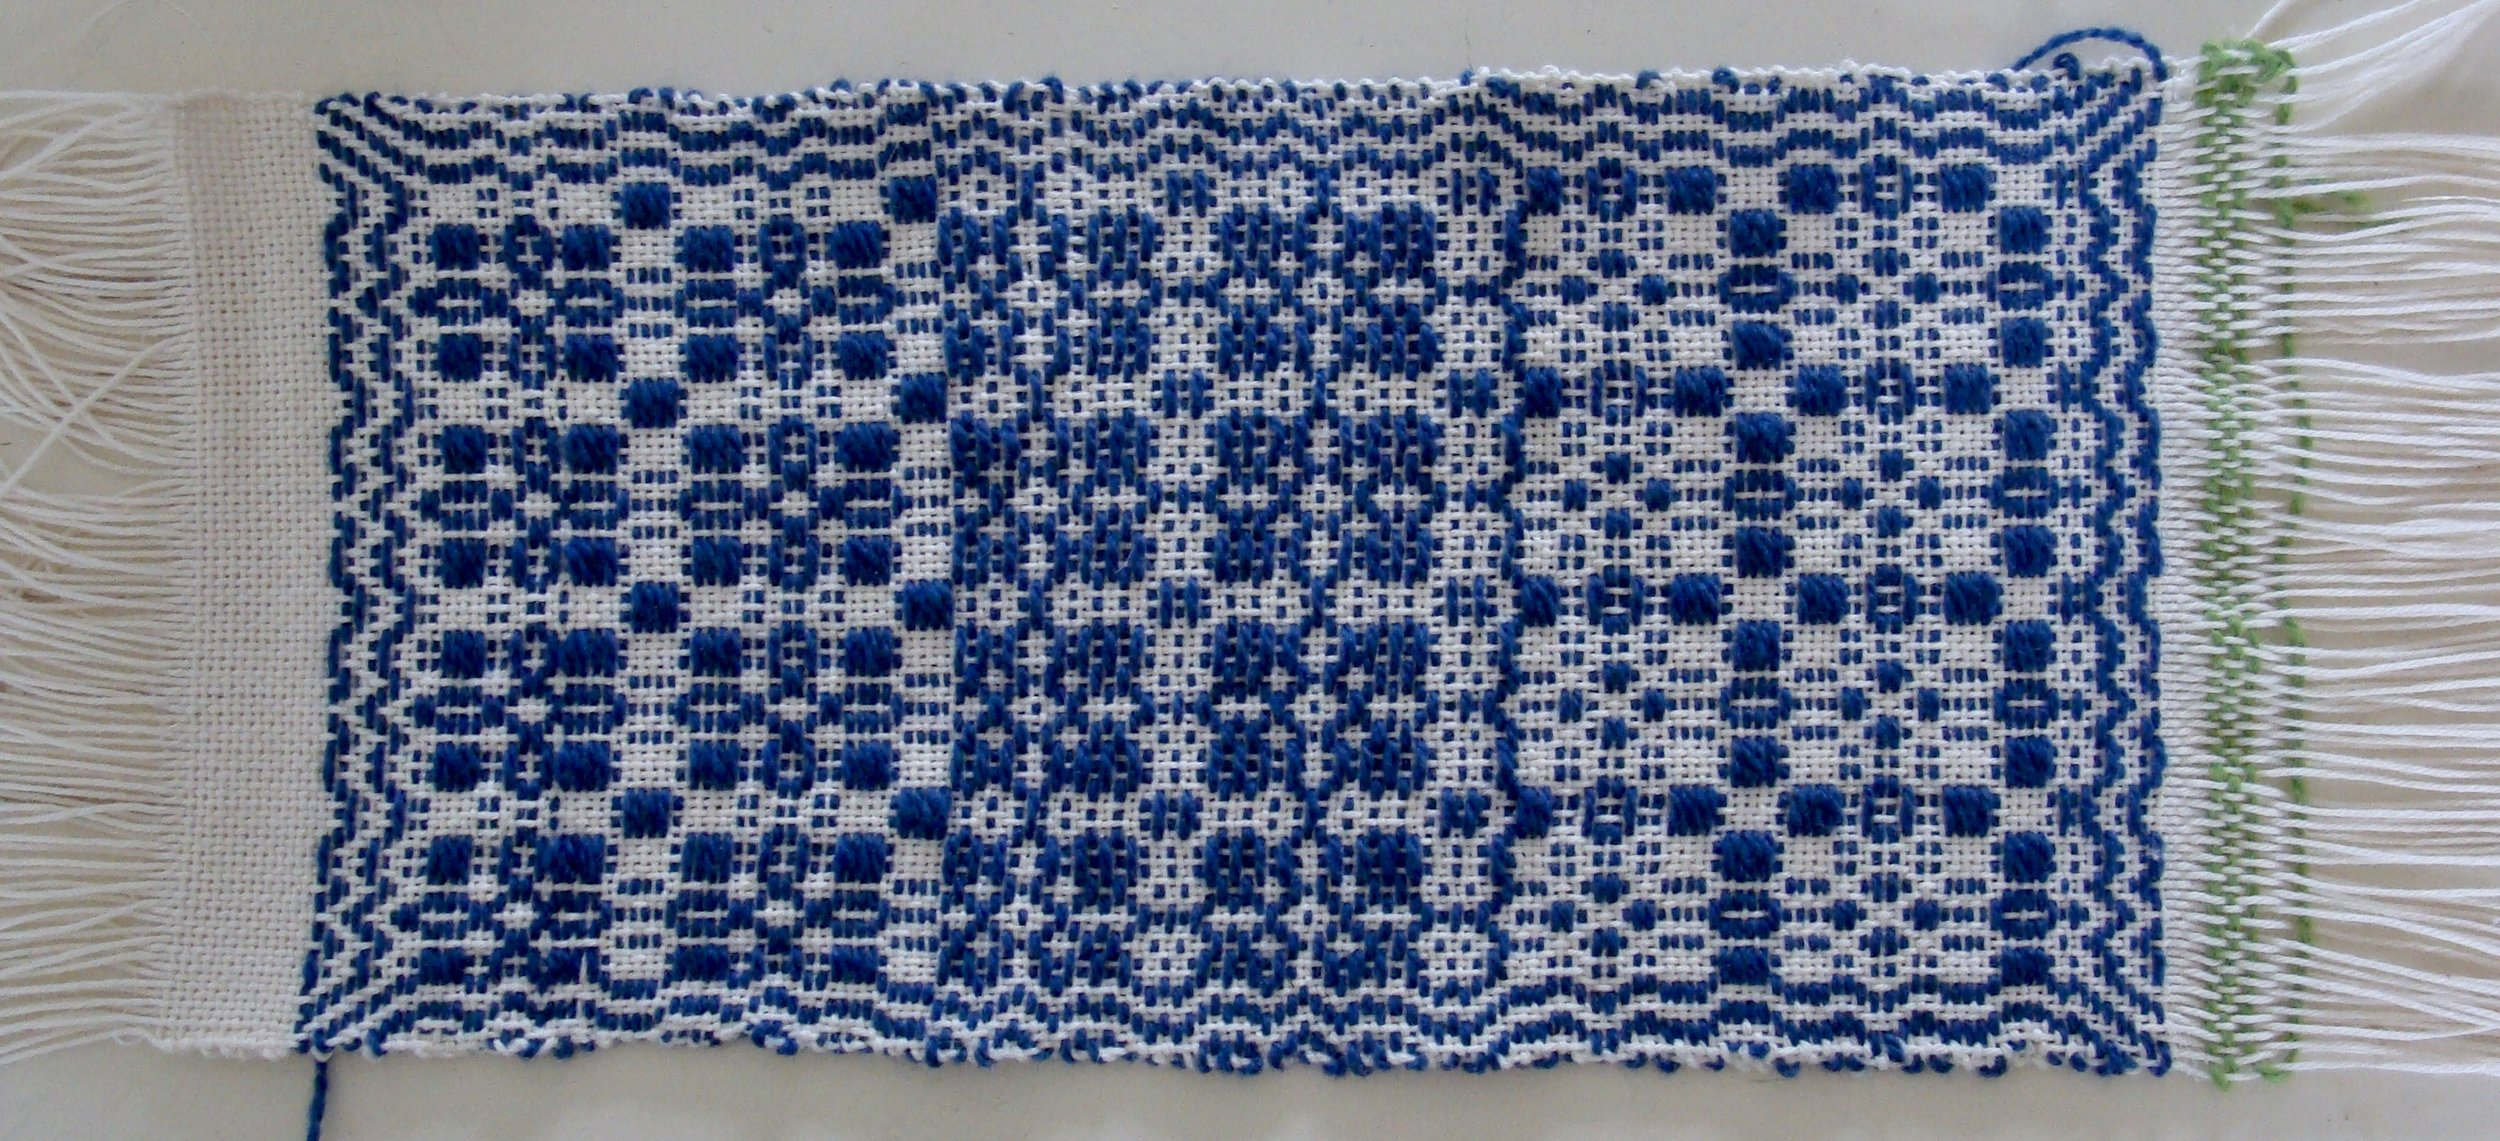 unfinished woven overshot sampler